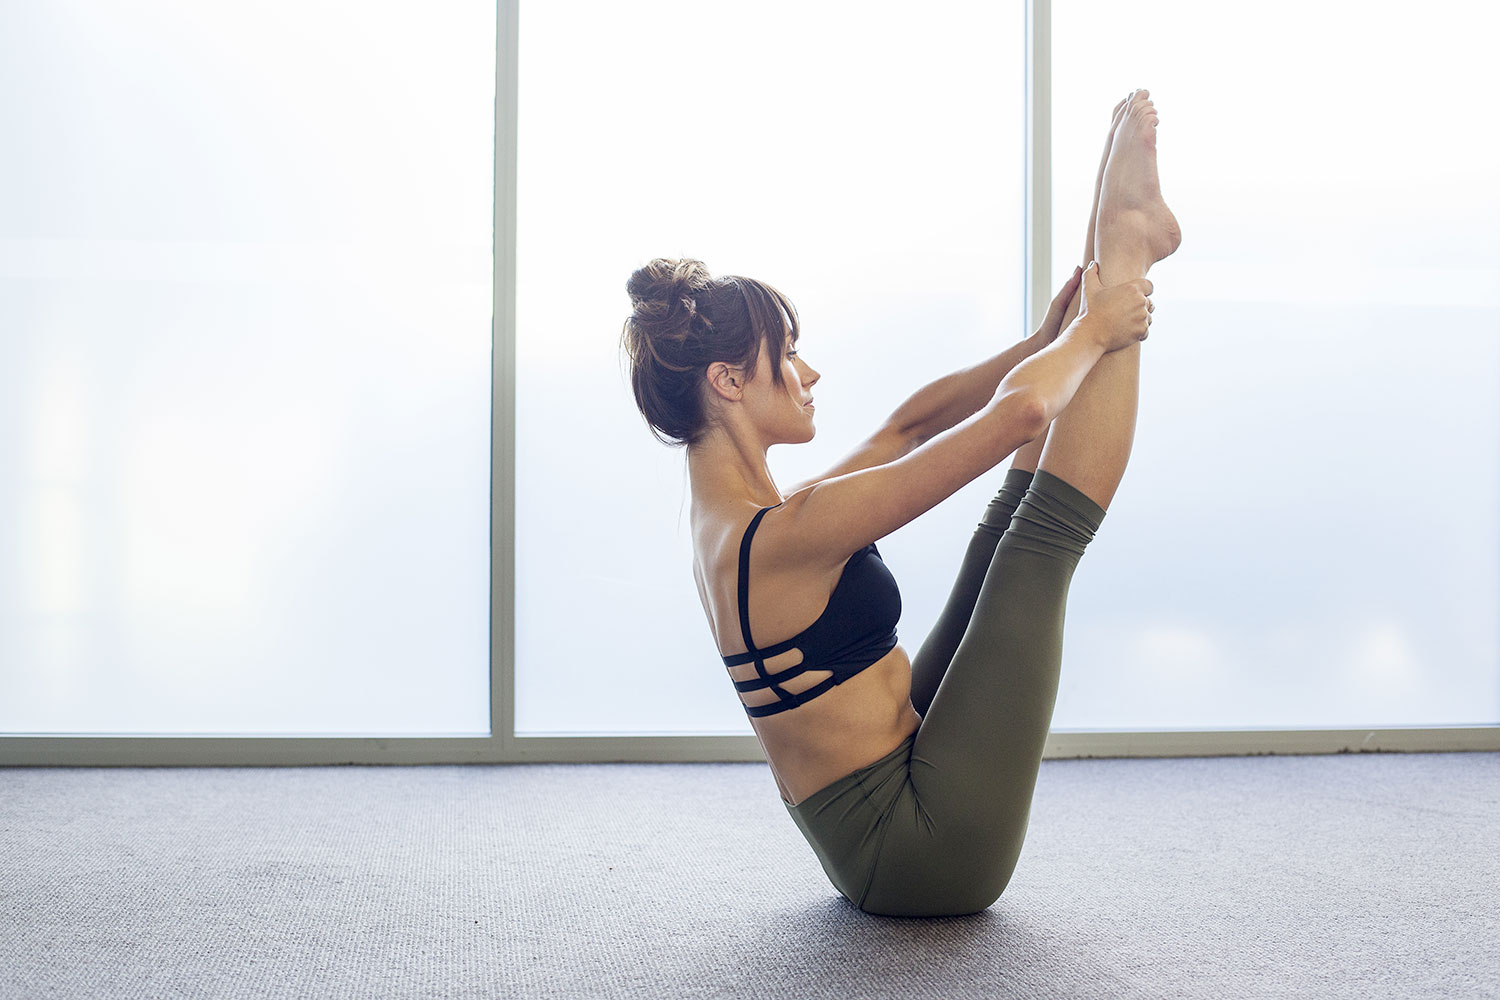 Pilates instructor in difficult pose